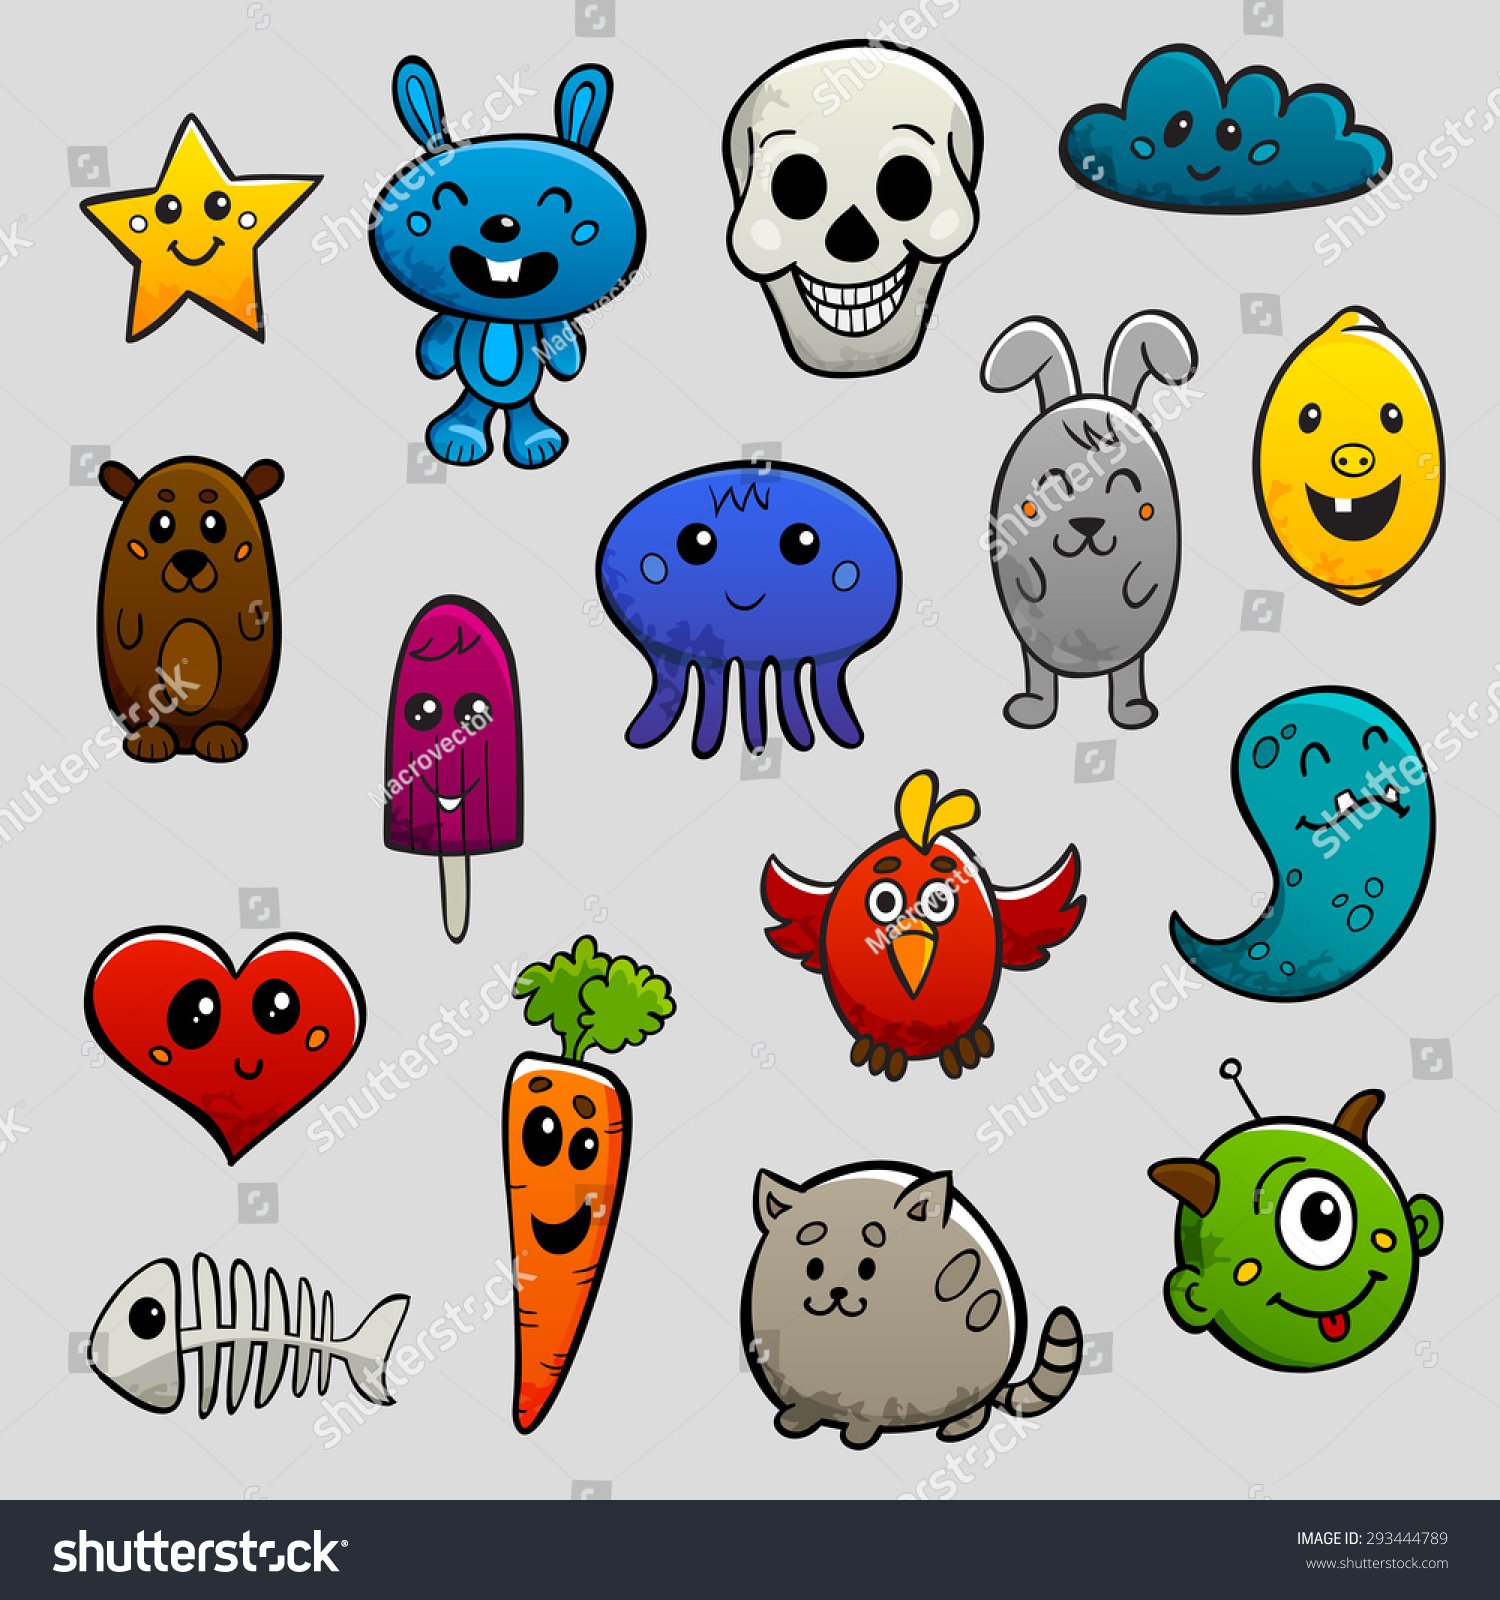 Graffiti Cartoon Characters Abstract Animals And Fruits Flat Bright Color Icon Set Isolated